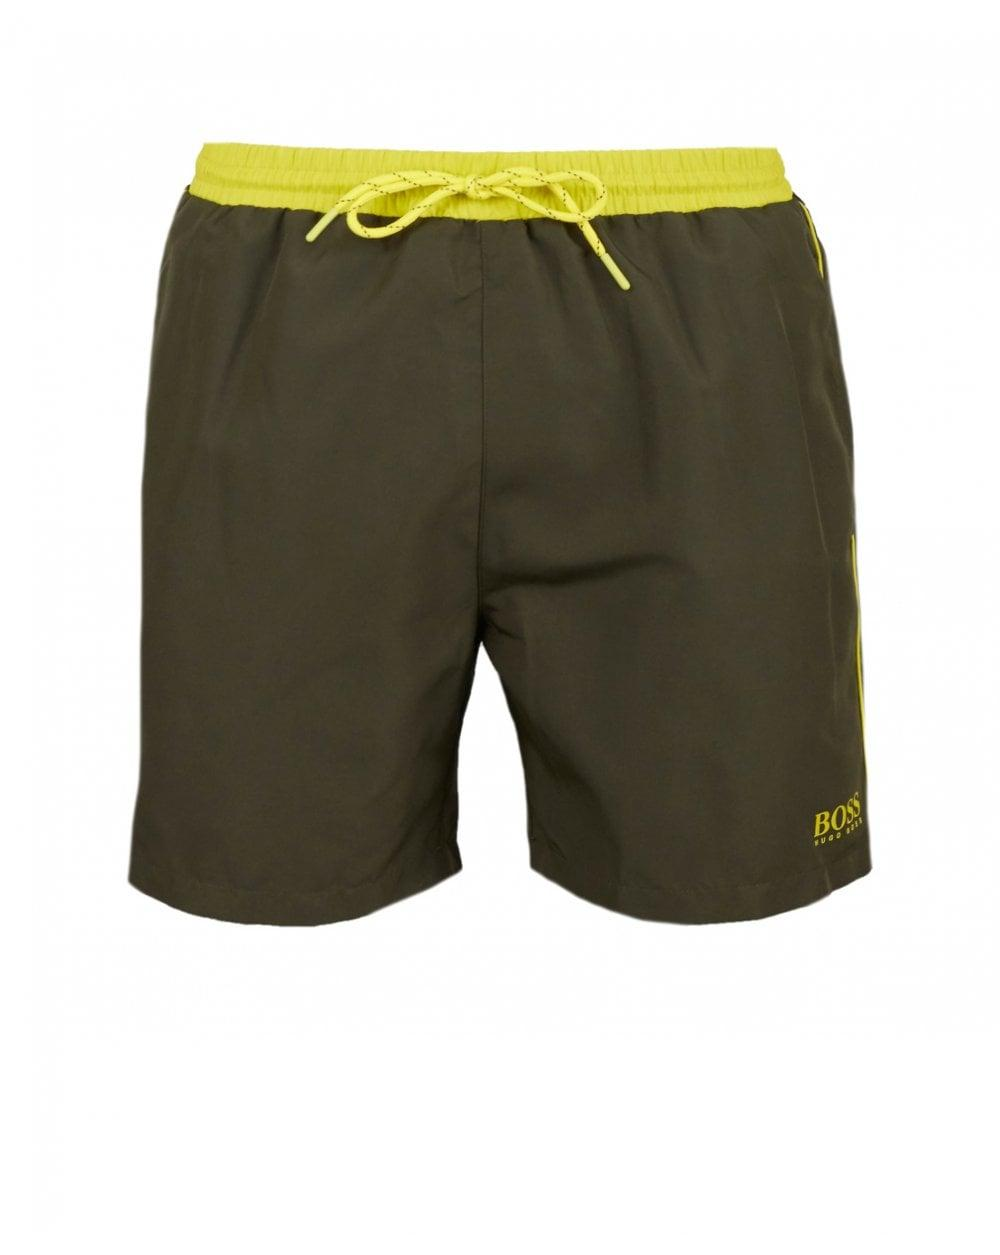 99f1991d6fed7 BOSS by Hugo Boss Starfish Swim Shorts in Green for Men - Lyst